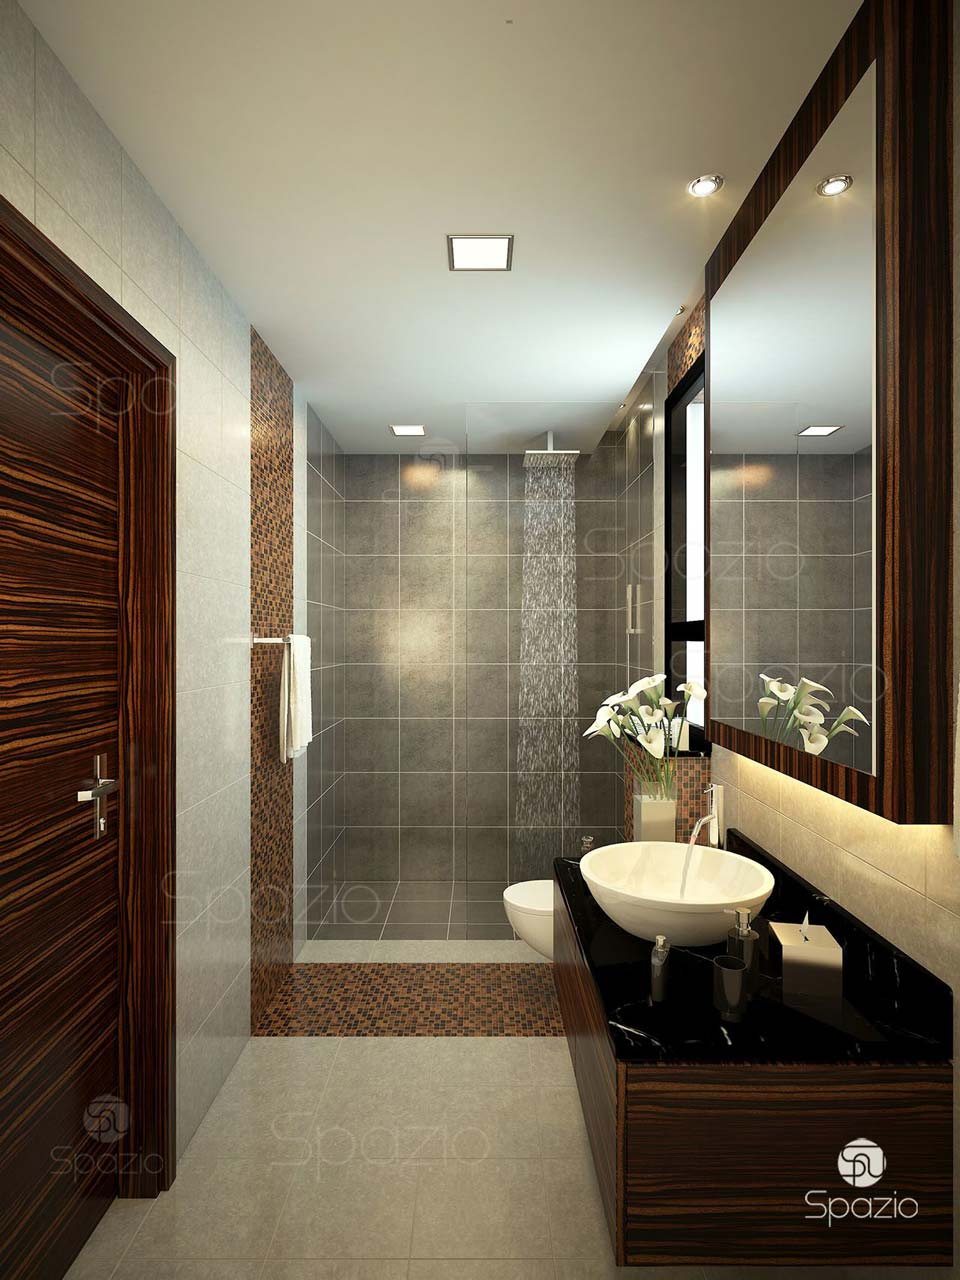 Bathroom Design In Dubai Bathroom Designs 2020 Spazio